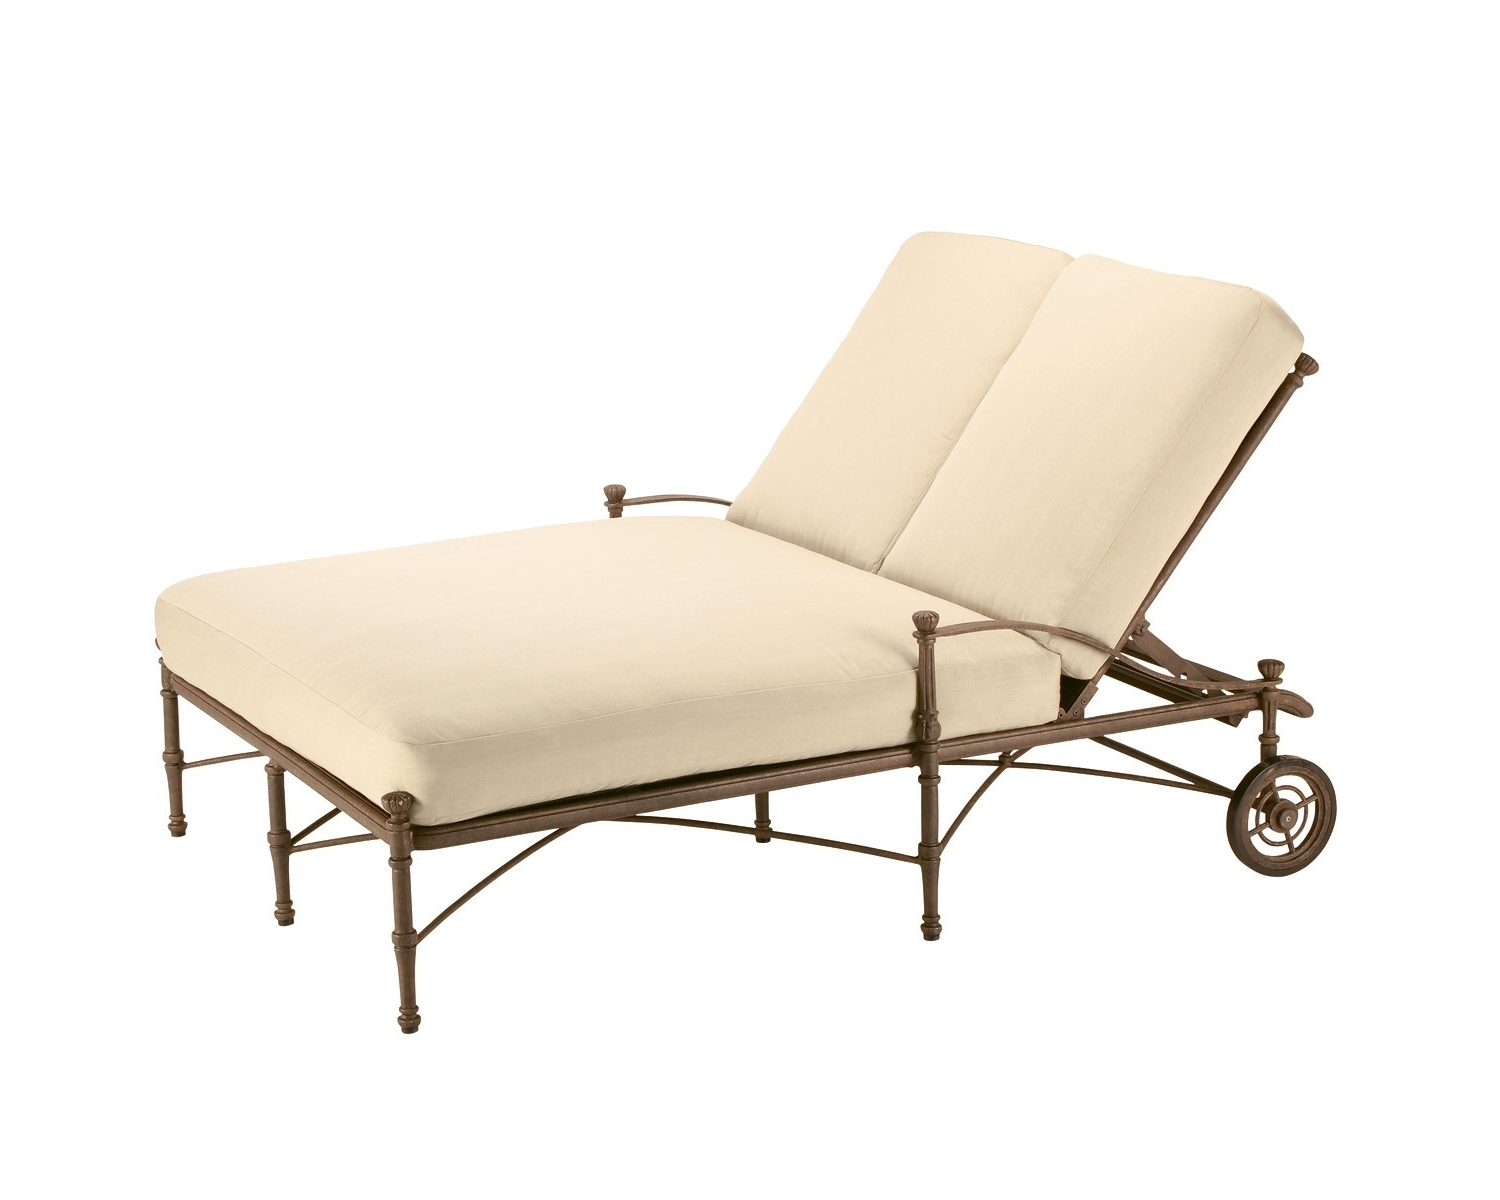 Fashionable Outdoor Patio Furniture Sale Sling Chaise Lounge White Outdoor Pertaining To Kettler Chaise Lounge Chairs (View 6 of 15)